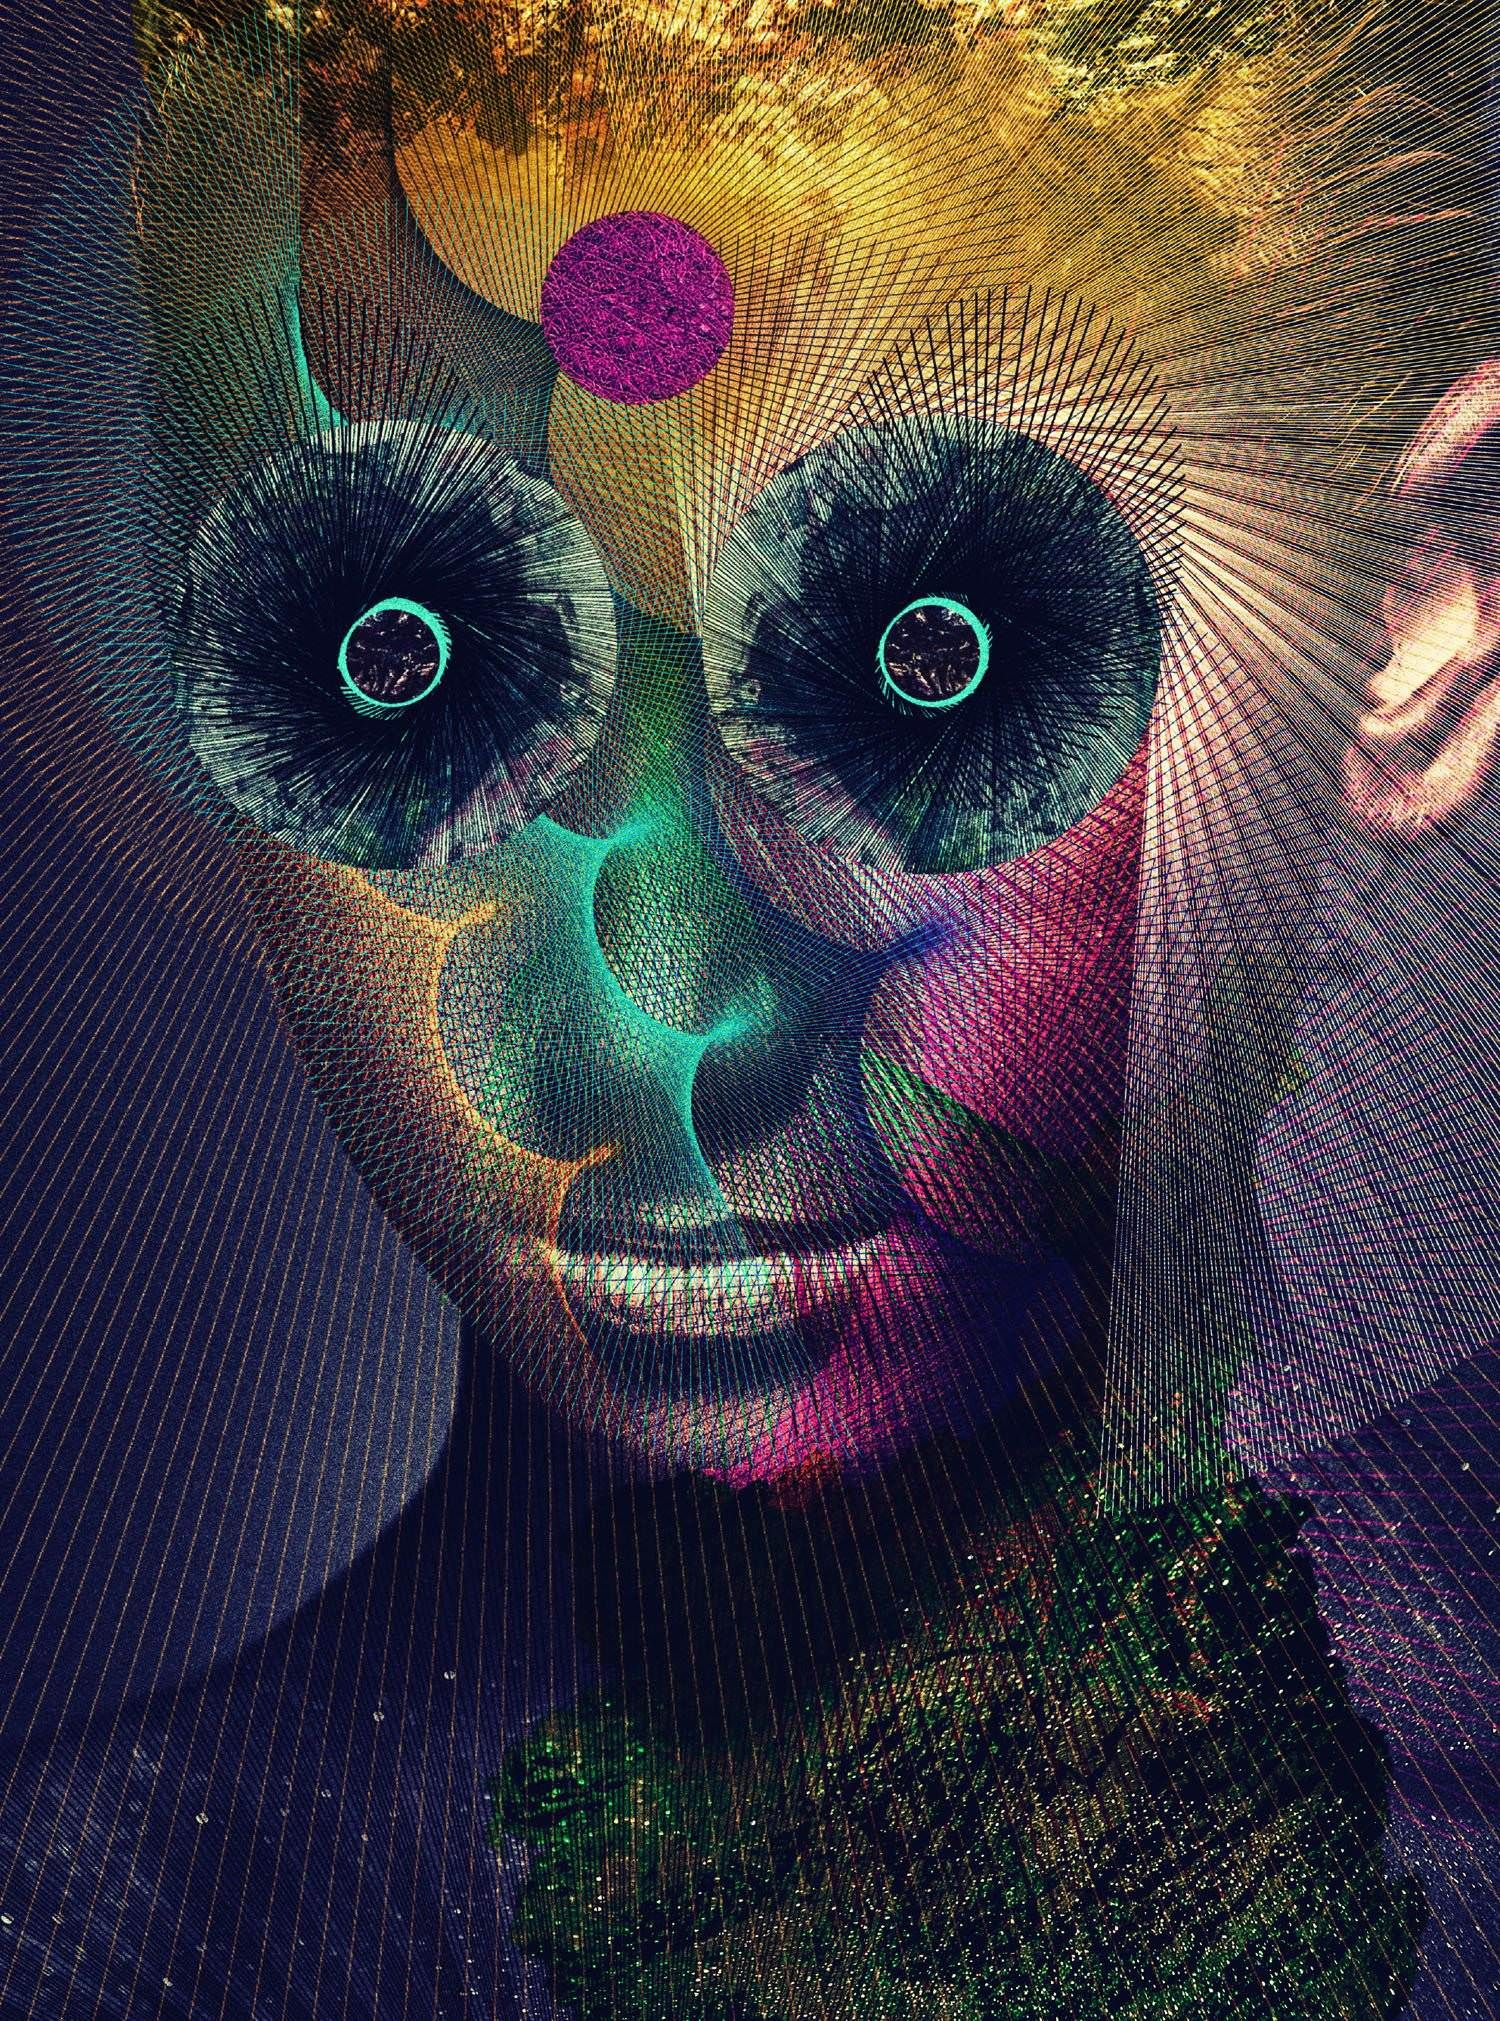 Best Album Covers 2021 Dir en grey   The Insulated World [1500 x 2021] #album art #cover